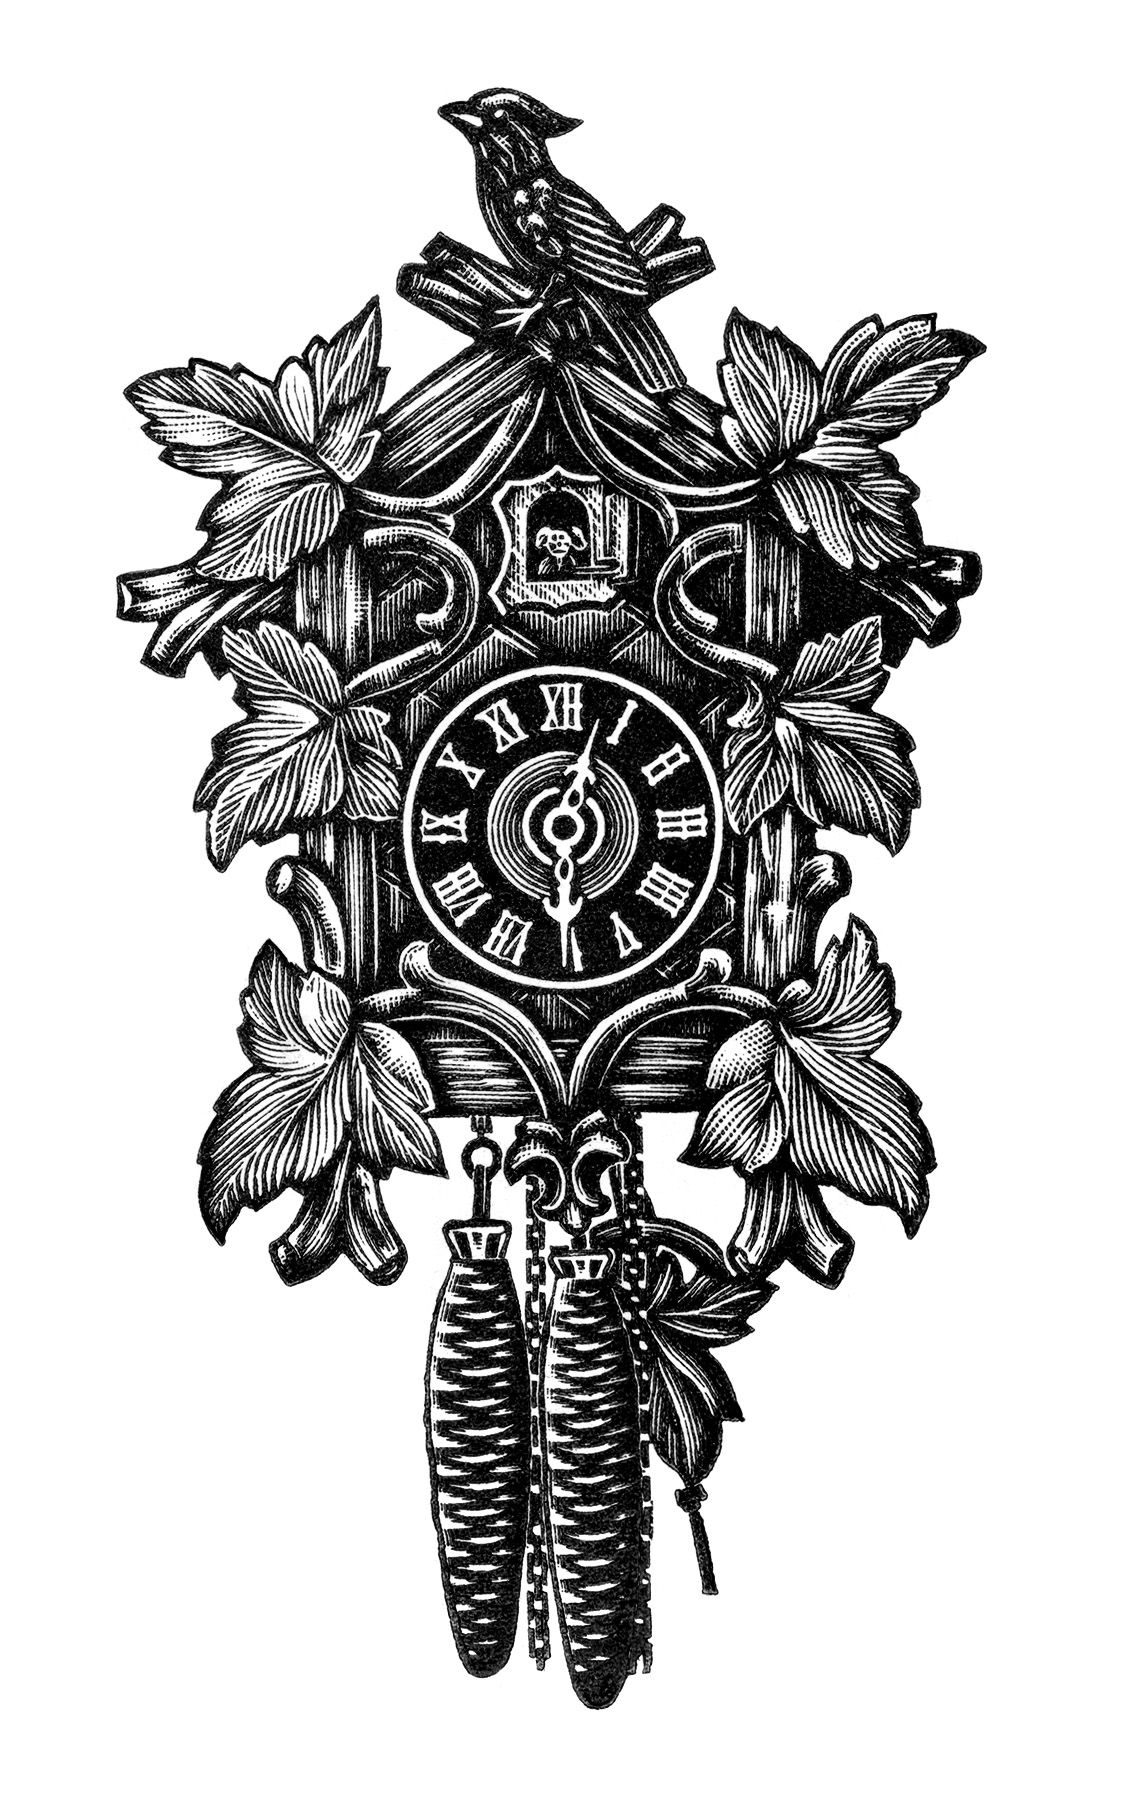 Engraving clipart clock And white art white antique